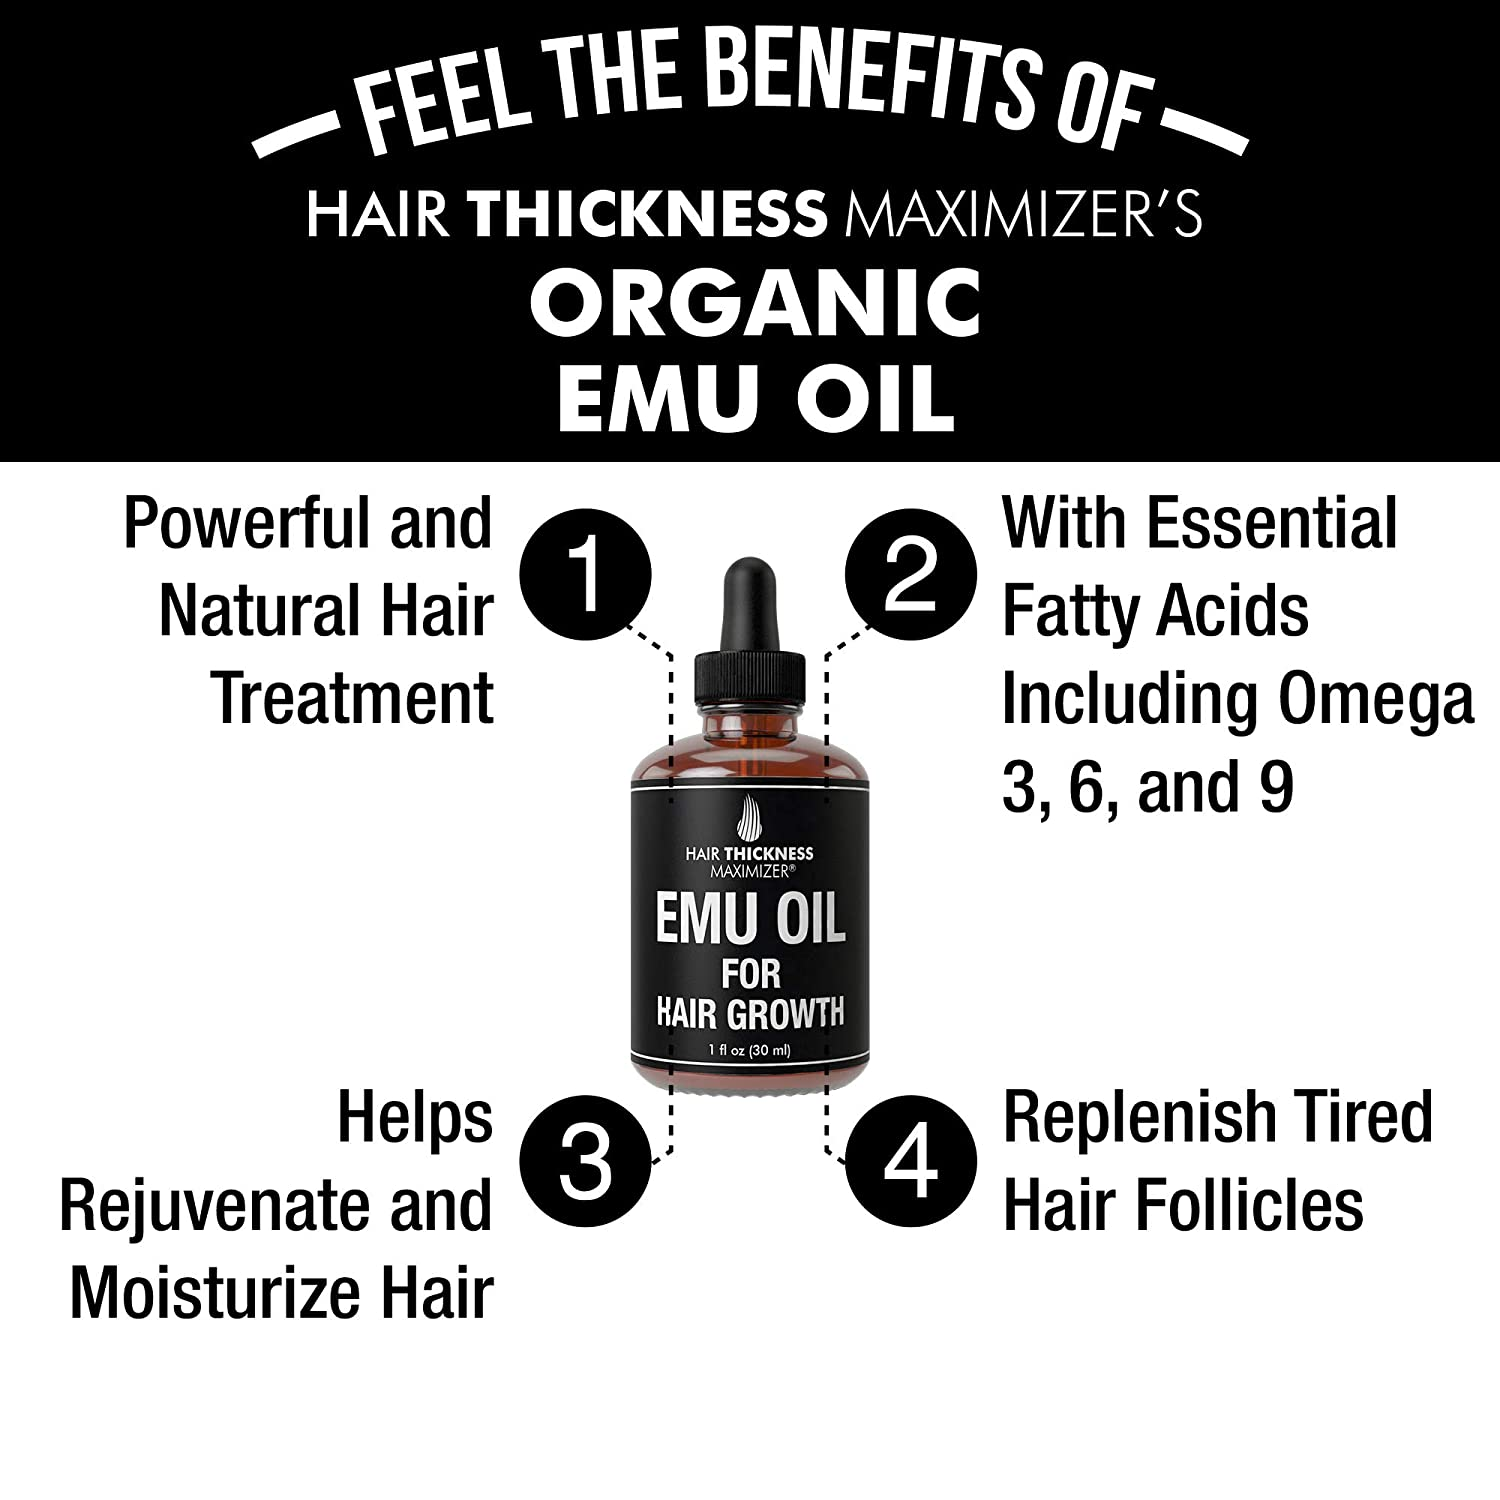 How long does emu oil take to work on hair? Within 30 days you will see improvement